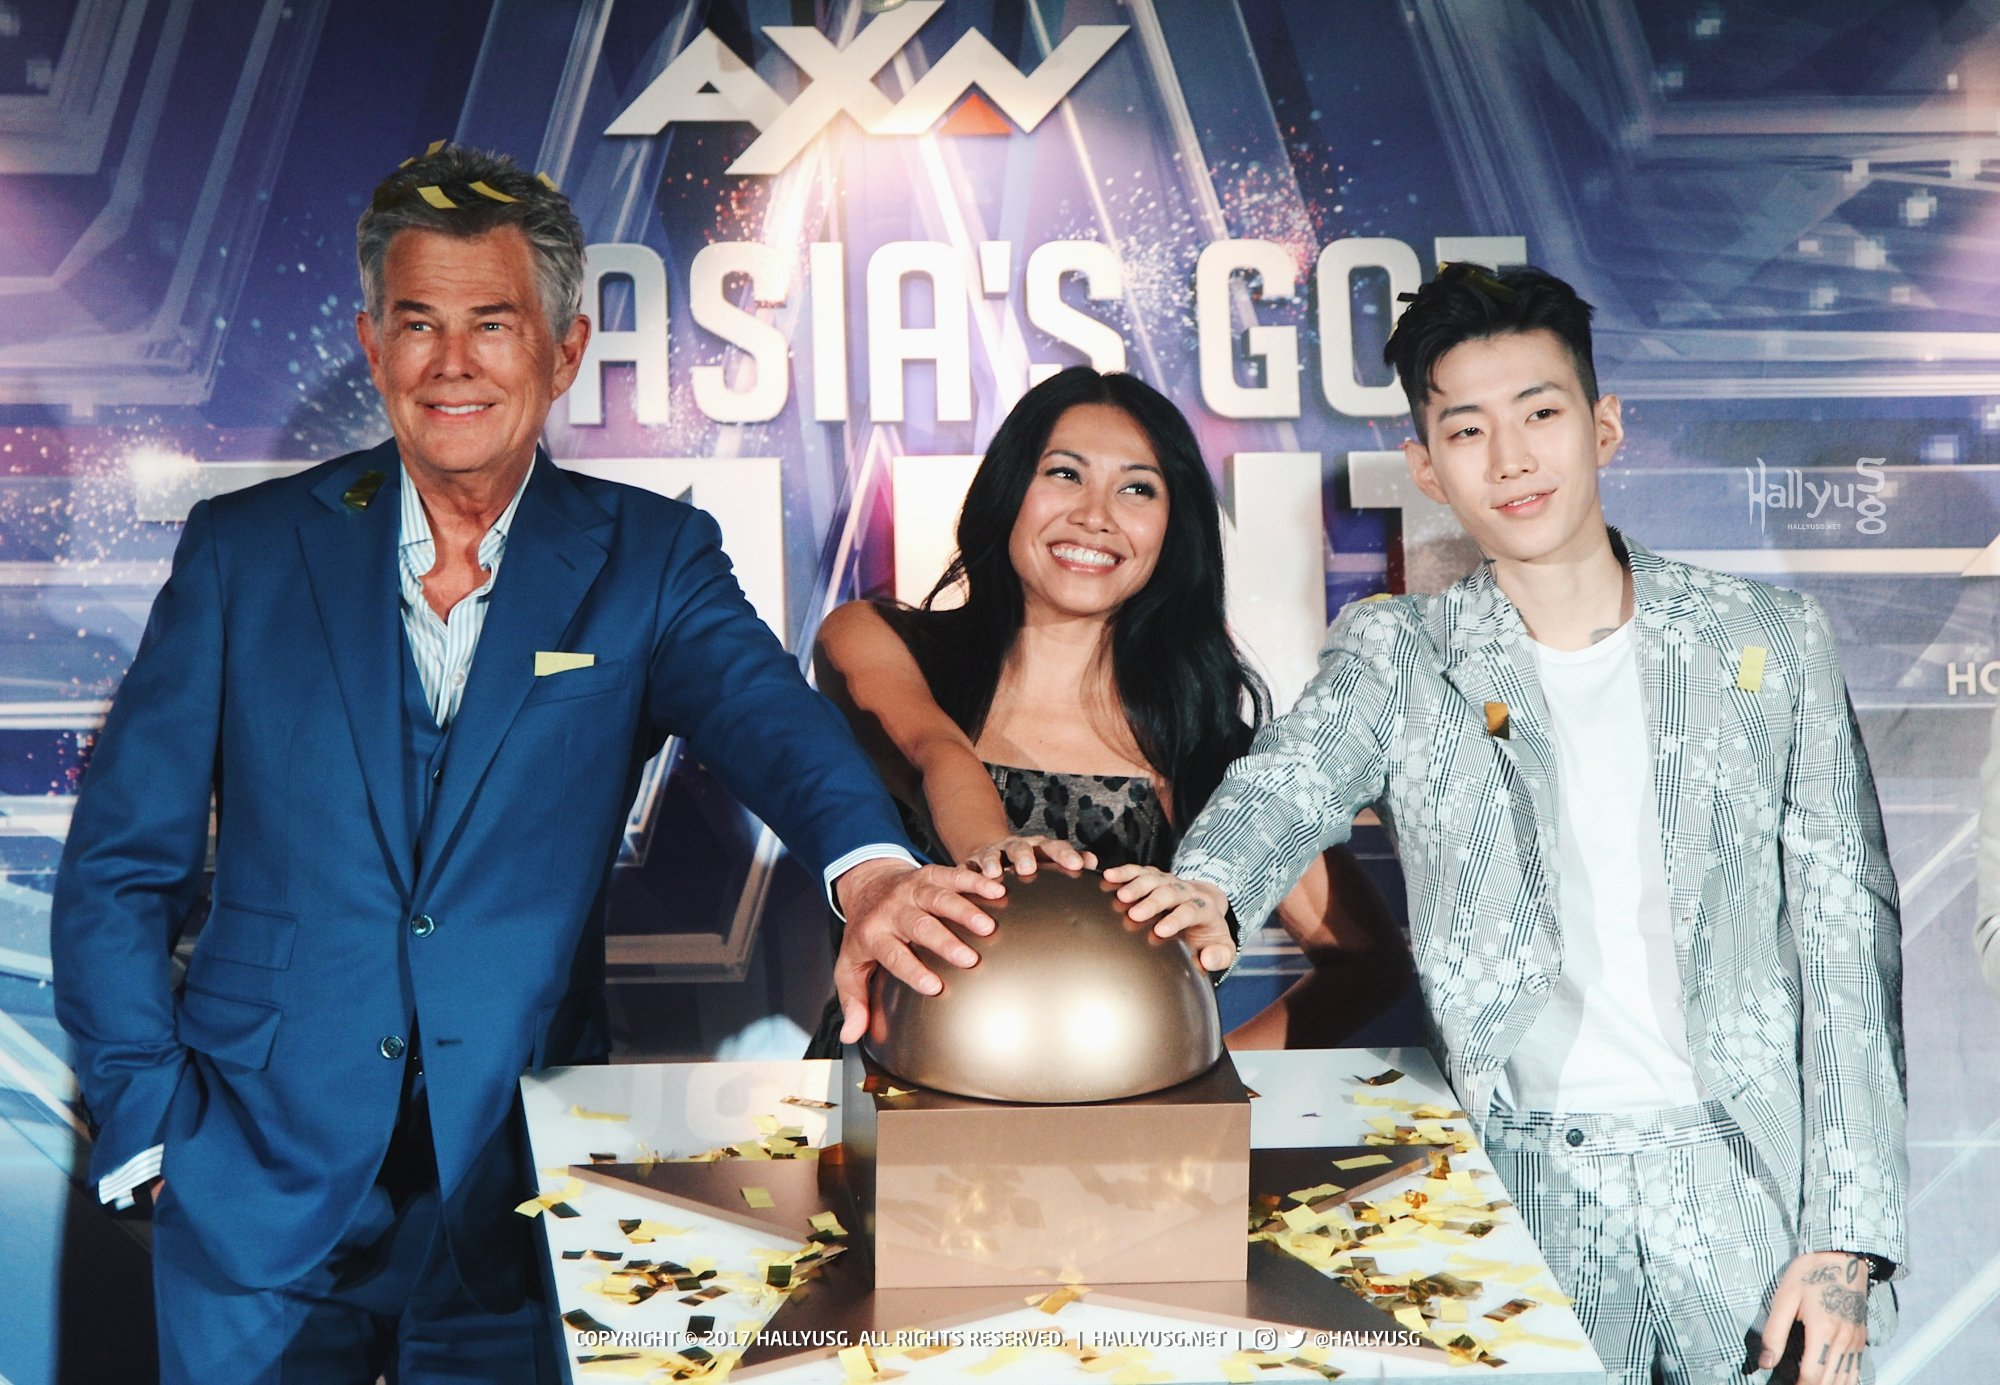 The Stage Is Yours Asia's Got Talent Season 2 Premieres